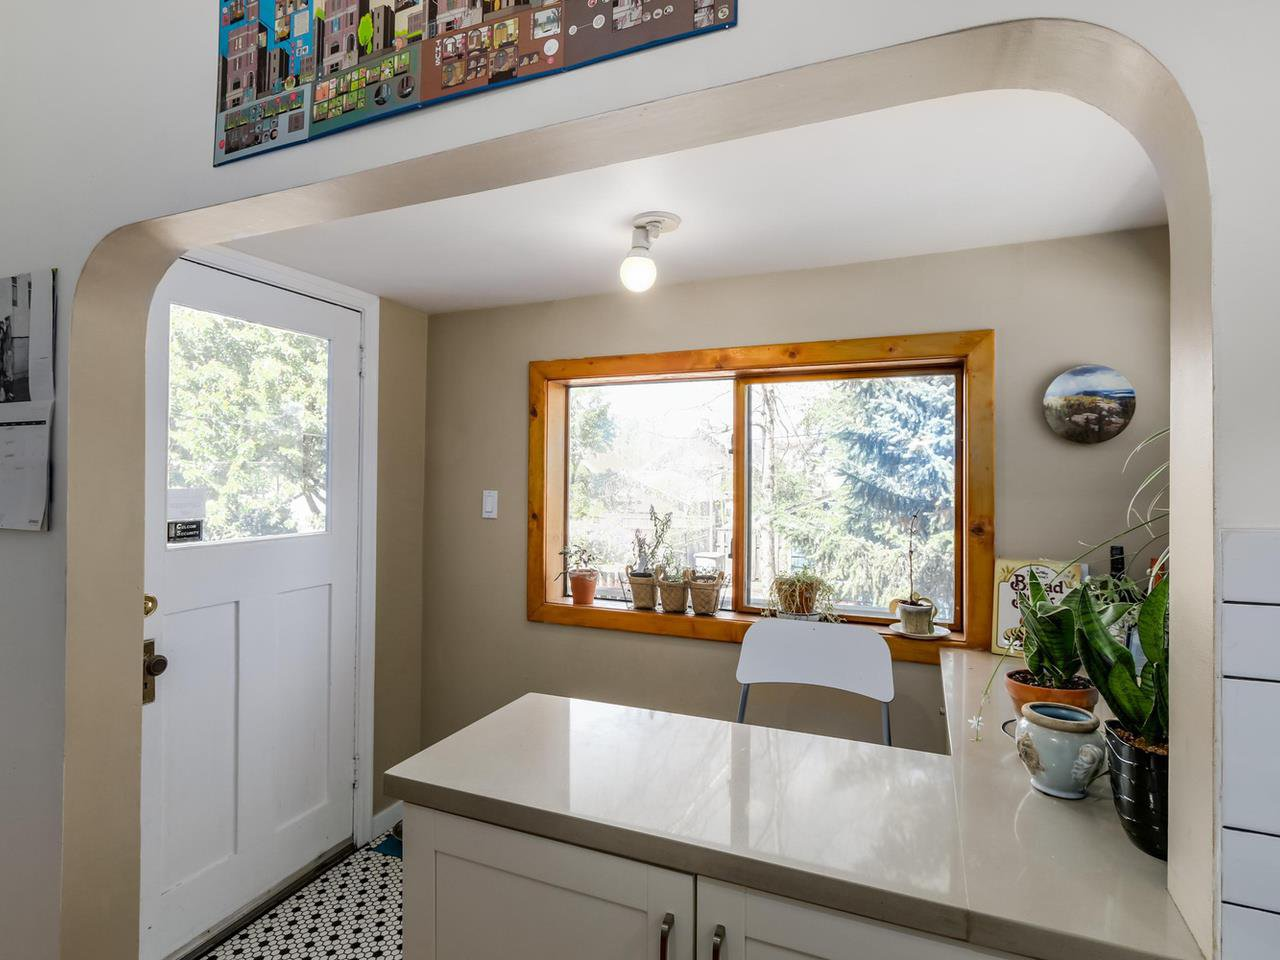 """Photo 9: Photos: 835 E 19TH Avenue in Vancouver: Fraser VE House for sale in """"CEDAR COTTAGE"""" (Vancouver East)  : MLS®# R2071745"""